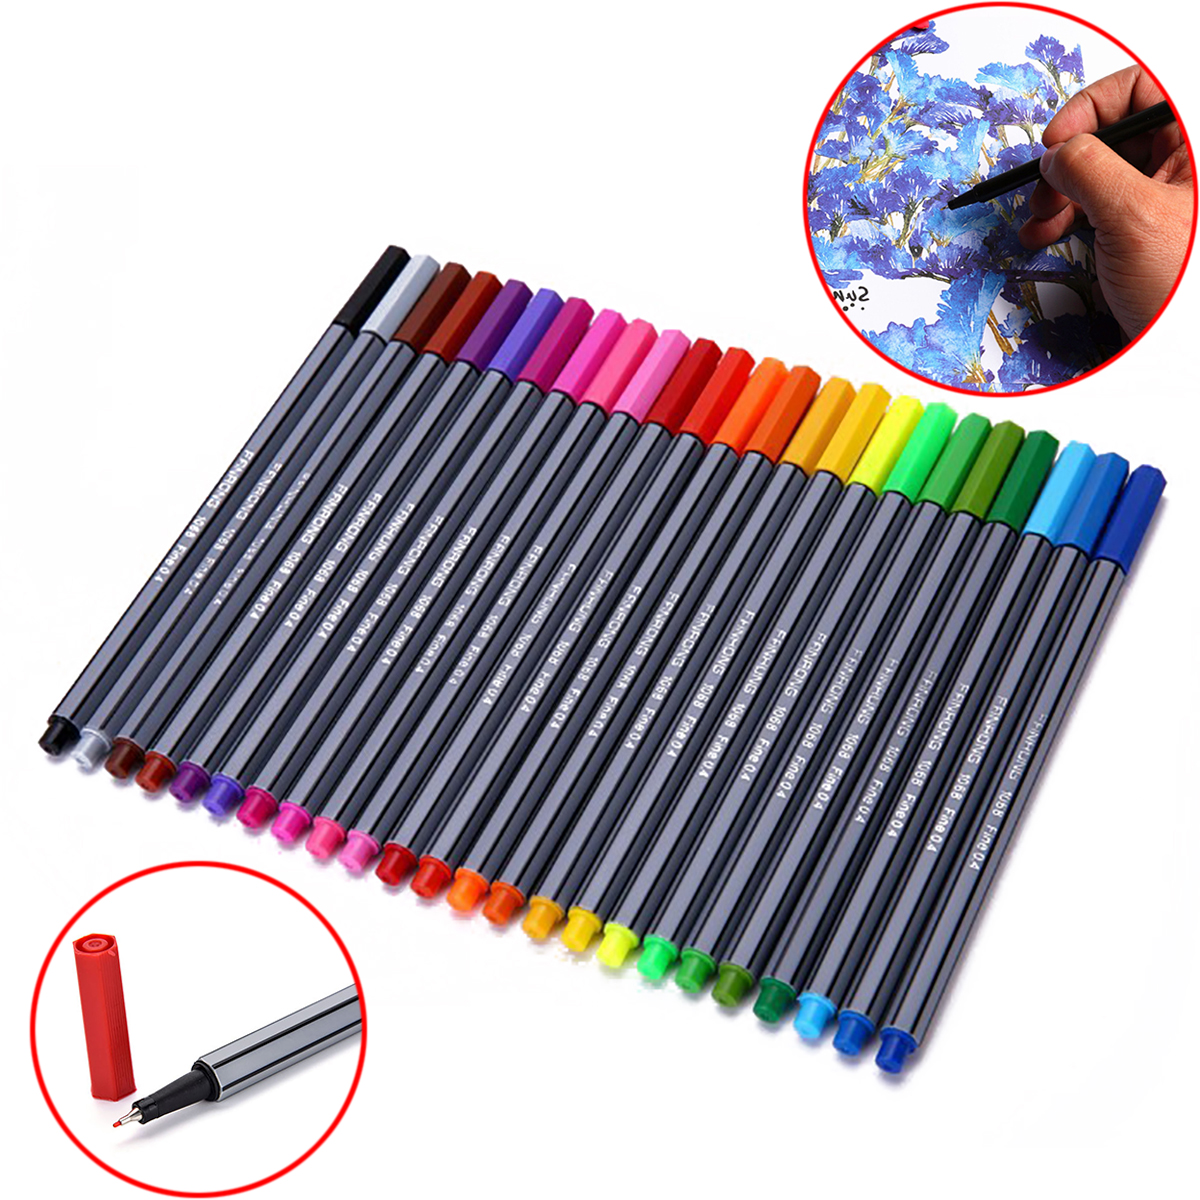 New 24 Colors 0.4mm Fineliner Pens Mayitr Color Fineliners Set Art Painting Drawing Markers Pen for Artists Crafters 250*200mm 0 4mm 24 colors art marker pen fine draw point 88 fineliner pens painting pencils children pens no tox drawing marker sketch